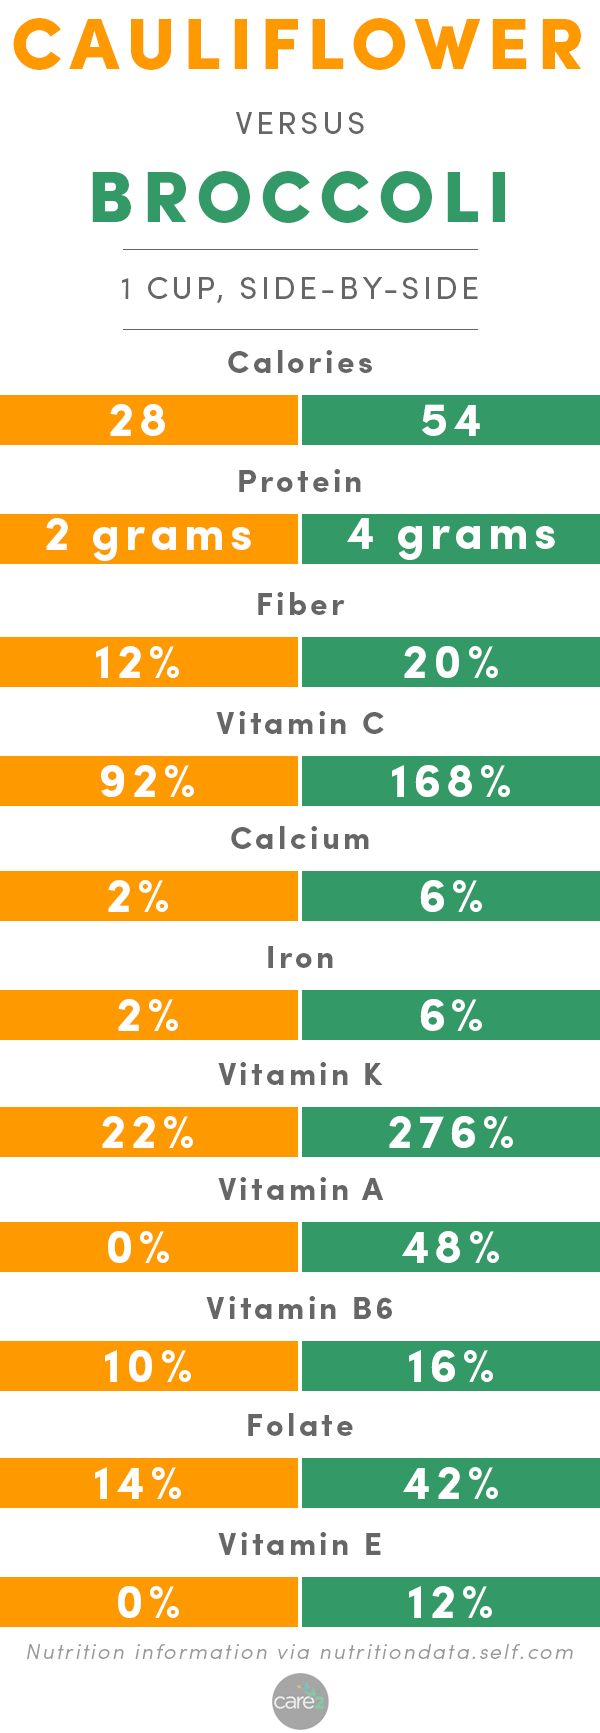 Have you ever wondered how cauliflower and broccoli stack up when it comes to vitamins and minerals? Wonder no more! Here's a breakdown of cauliflower vs. broccoli from a nutritional perspective.